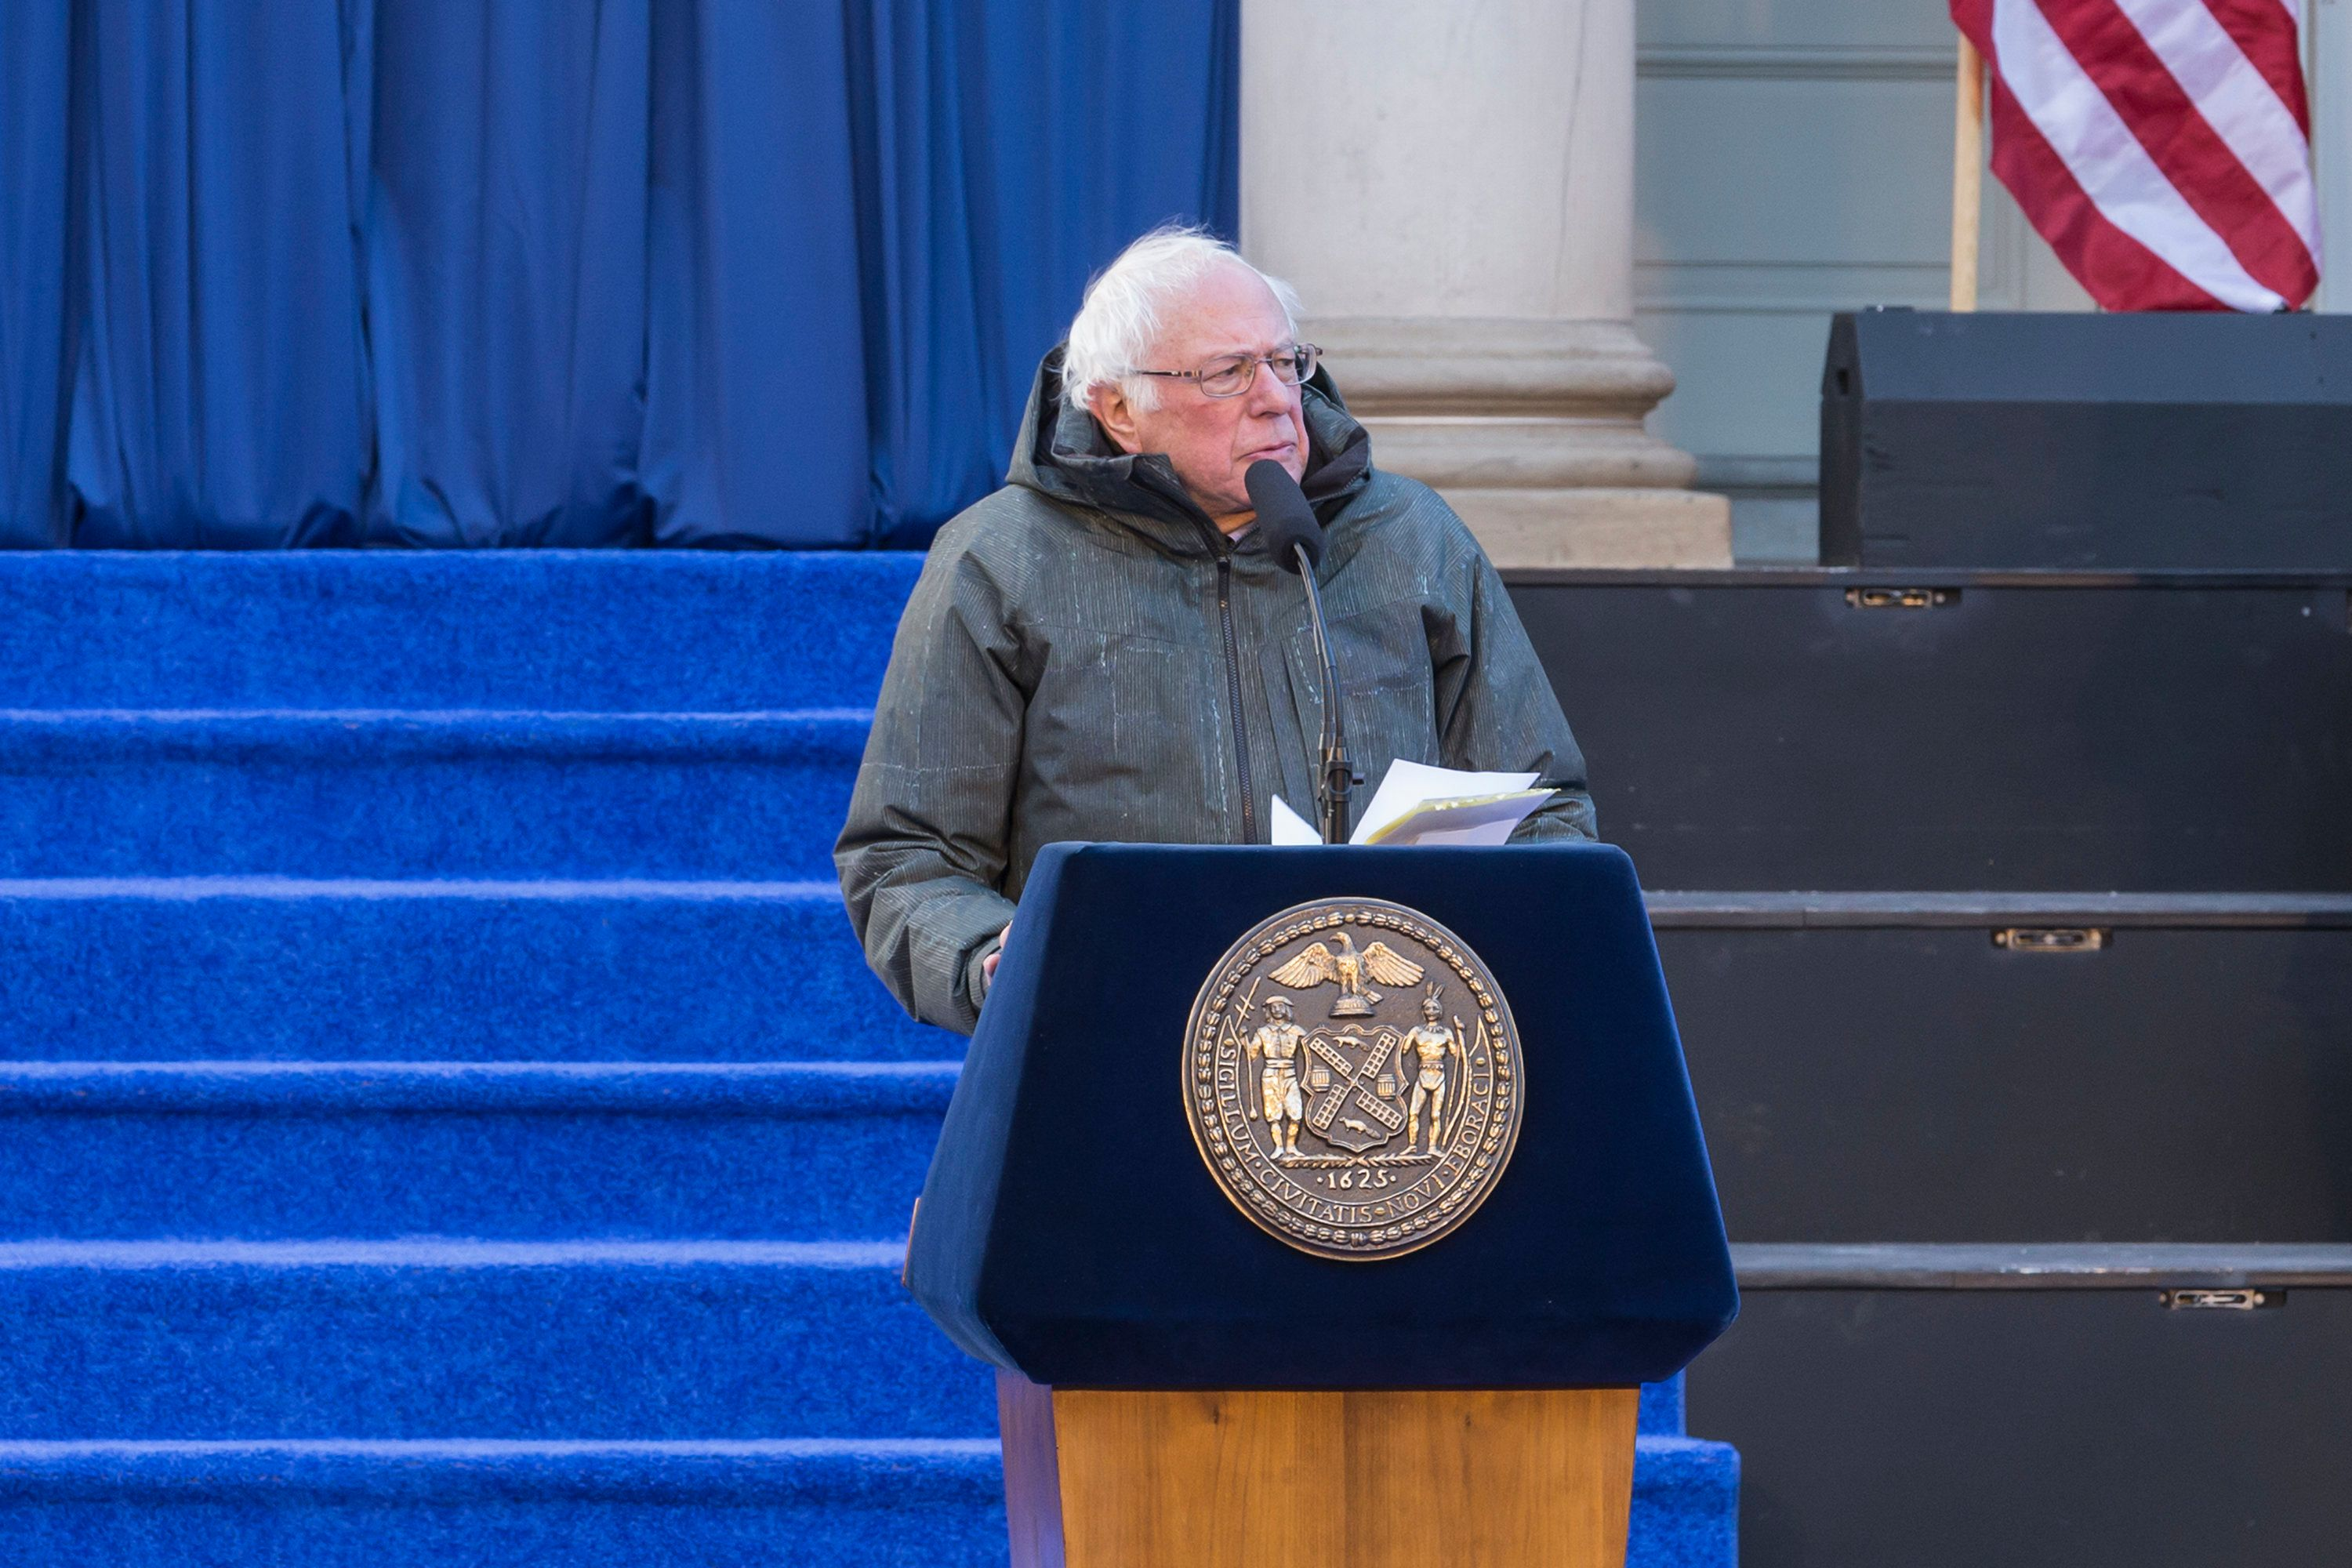 Sen. Bernie Sanders (I-Vt.) speaks at New York City Mayor Bill de Blasio's swearing-in ceremony on Jan. 1, 2018. He was sport